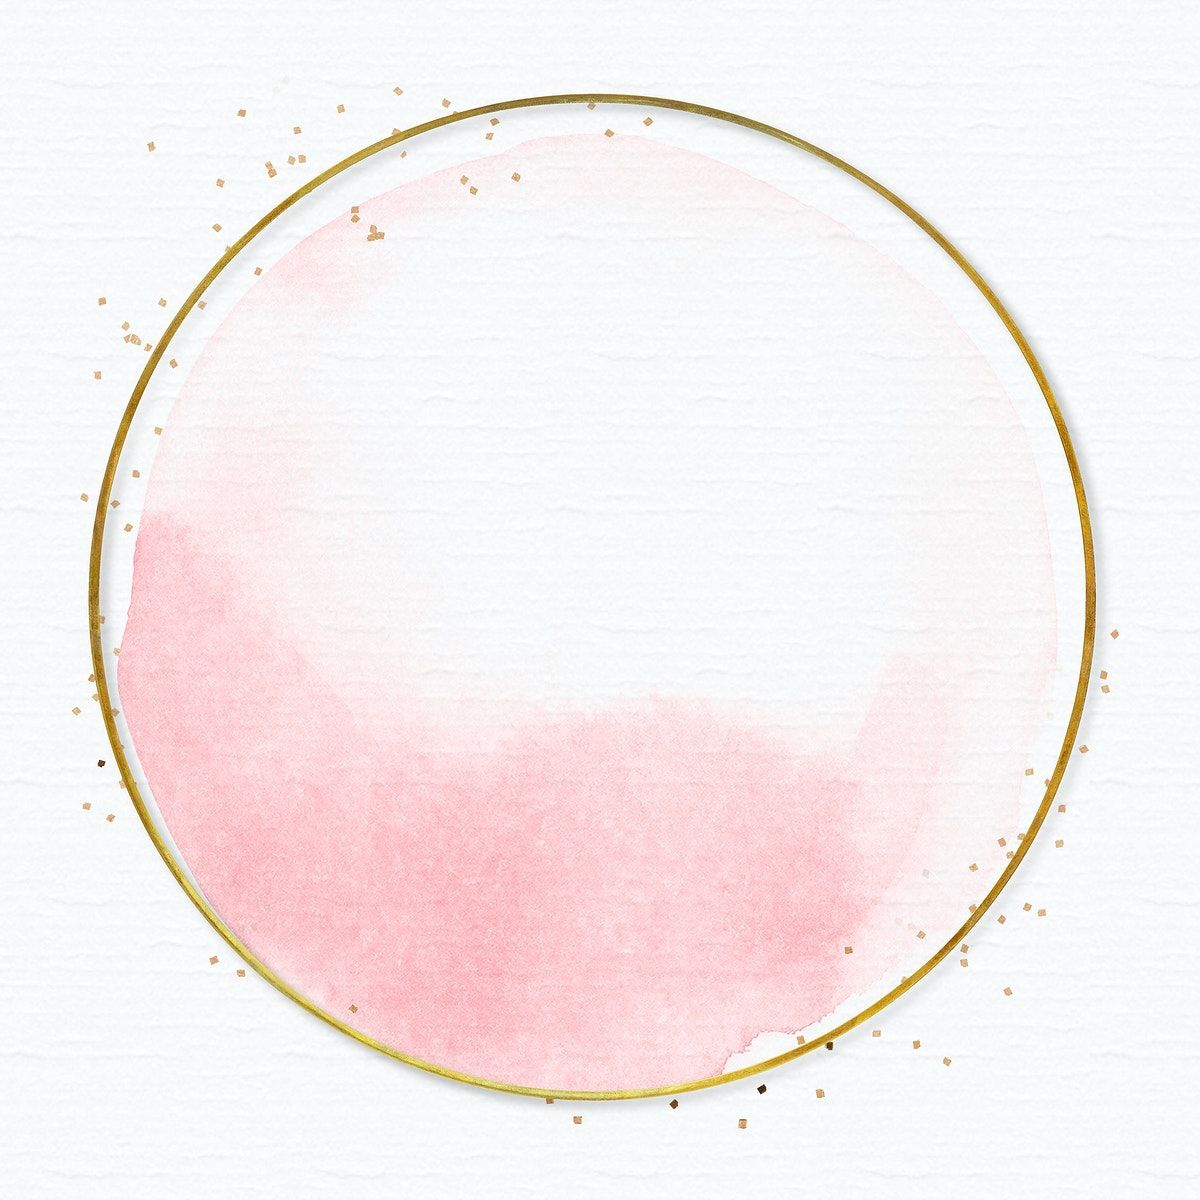 Gold Round Frame On Light Pink Background Free Image By Rawpixel Com Bus Paper Texture Background Design Pink Wallpaper Backgrounds Paper Background Design